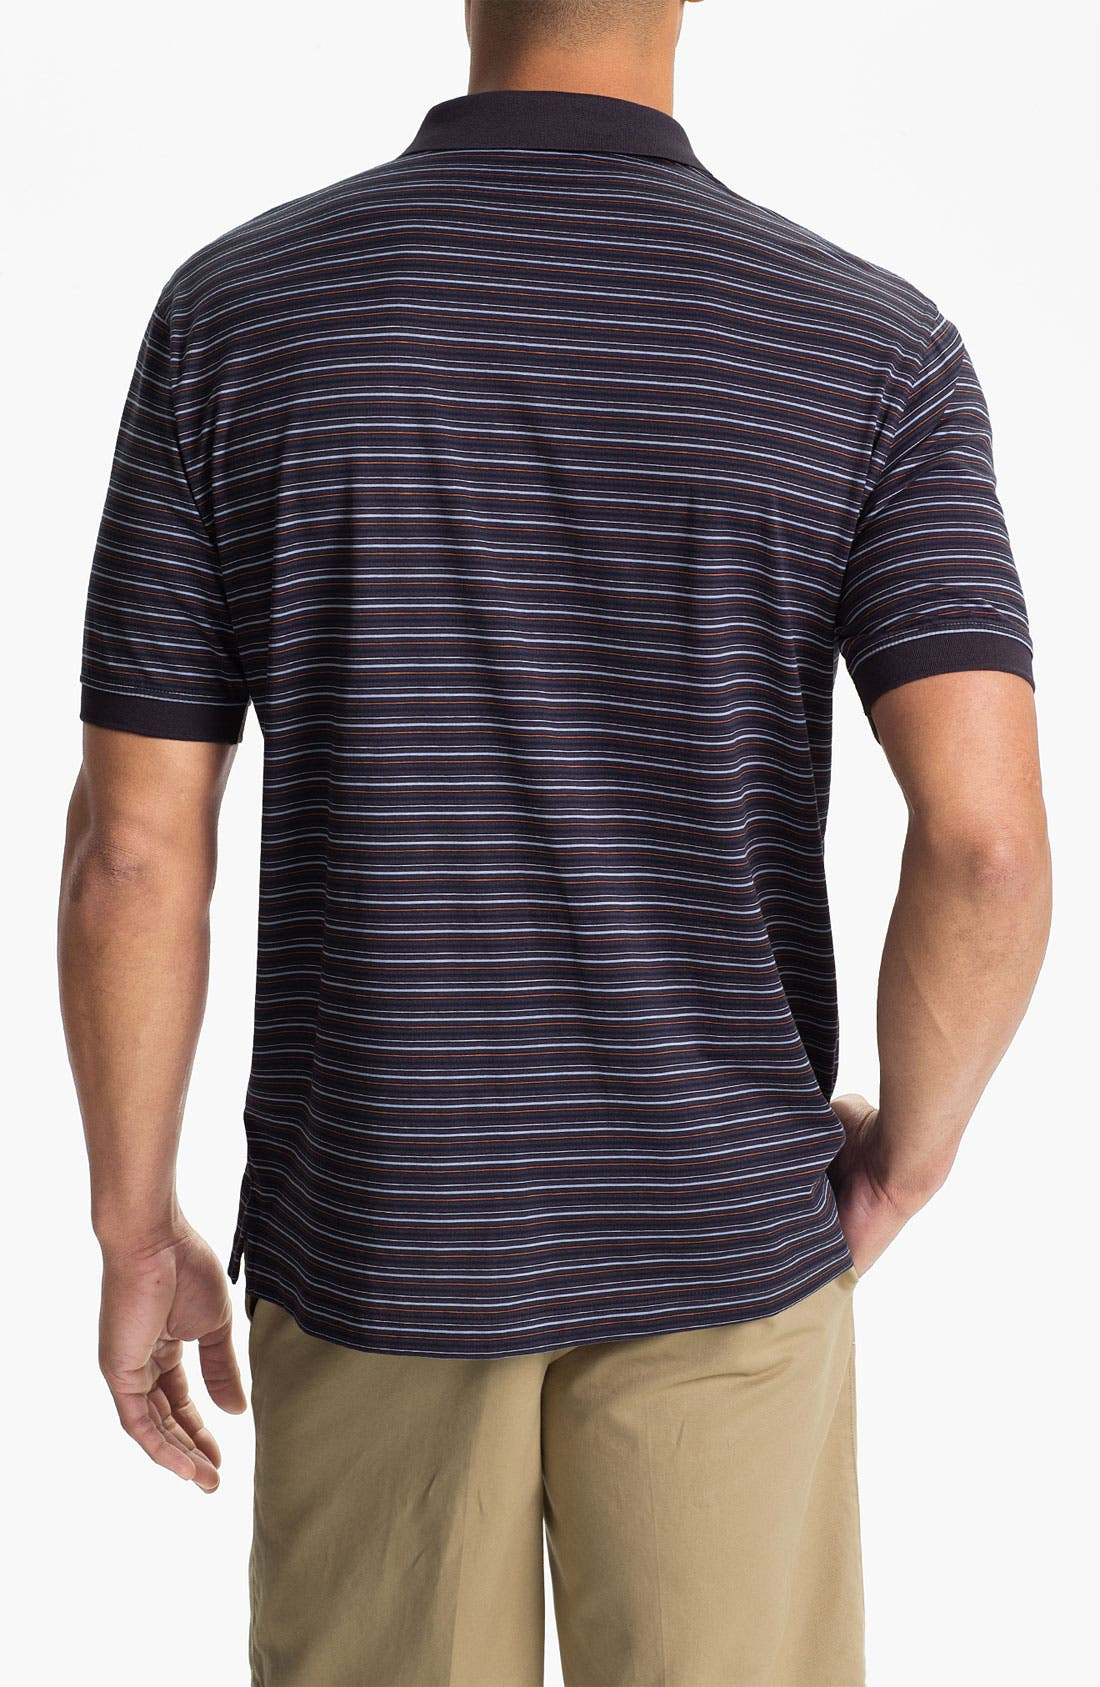 Alternate Image 2  - Cutter & Buck '70/2's Performance Andrew Stripe' Regular Fit Polo (Online Only)